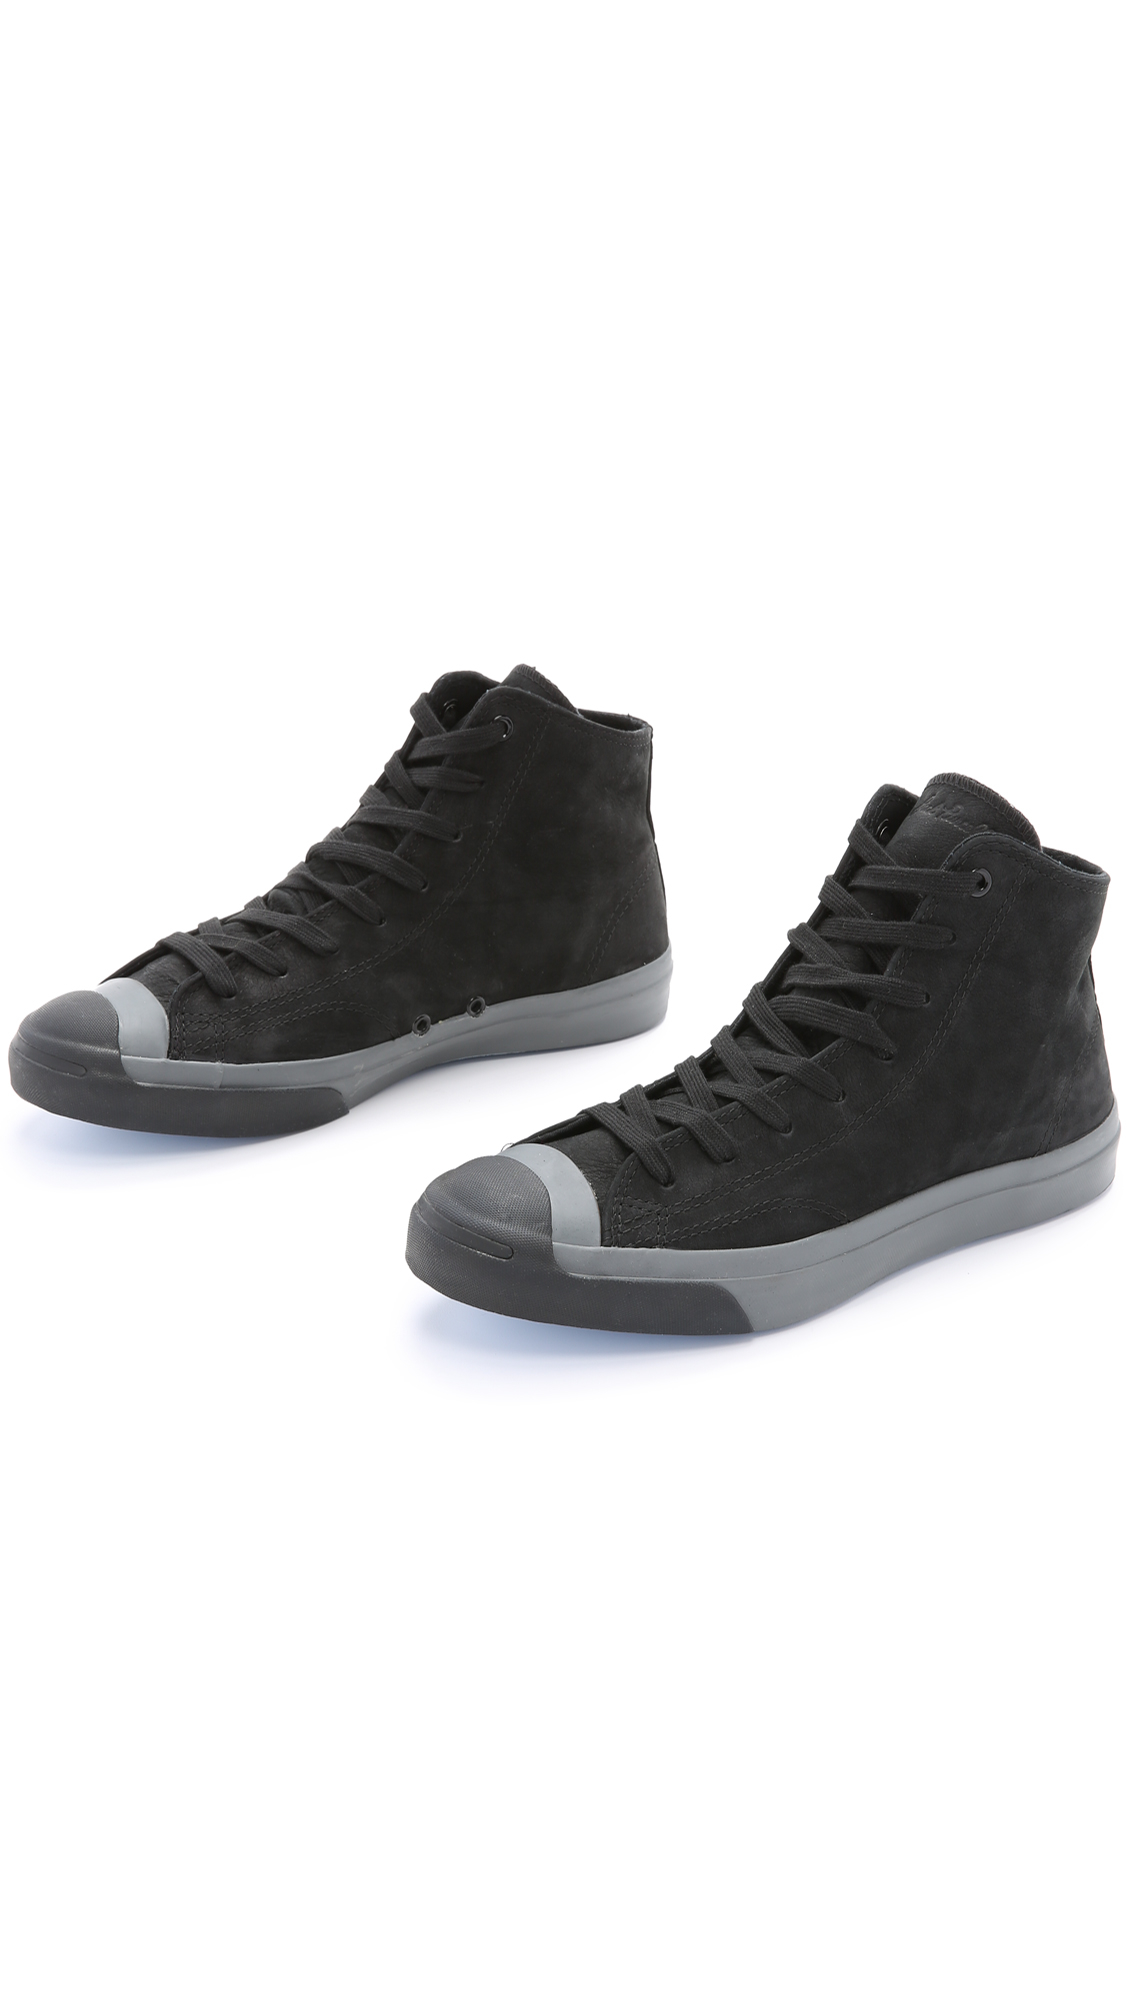 converse jack purcell gray 05g4  Gallery